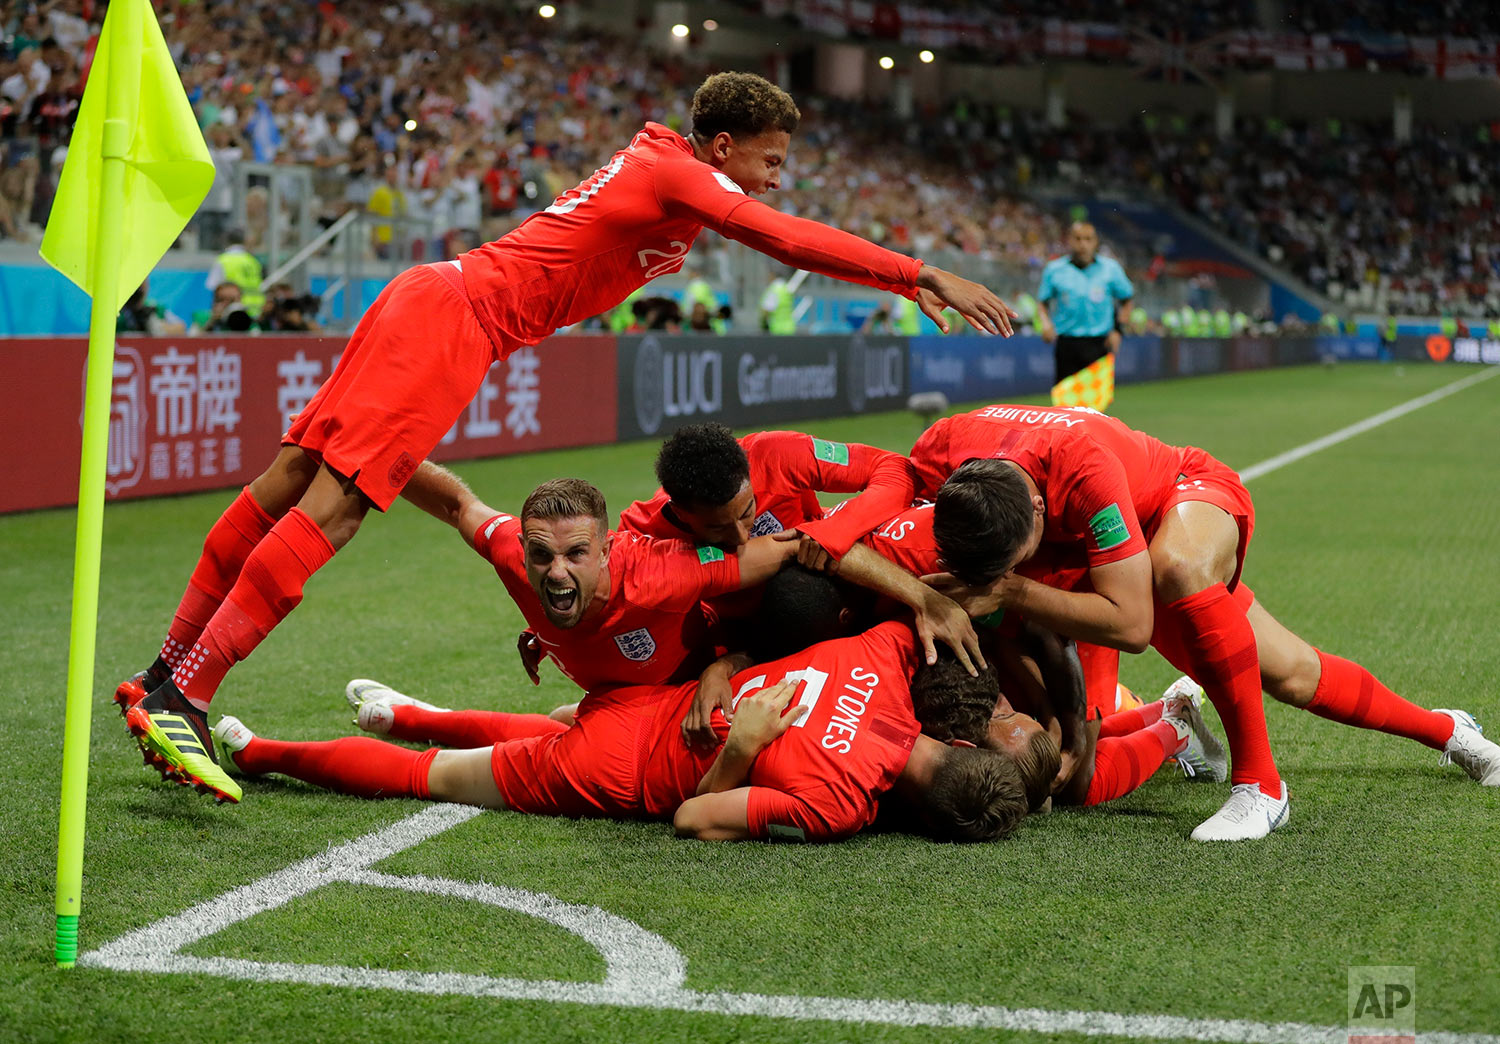 England's team celebrate after scoring their side's opening goal against Tunisia during the group G match between Tunisia and England at the 2018 soccer World Cup in the Volgograd Arena in Volgograd, Russia, Monday, June 18, 2018. (AP Photo/Sergei Grits)